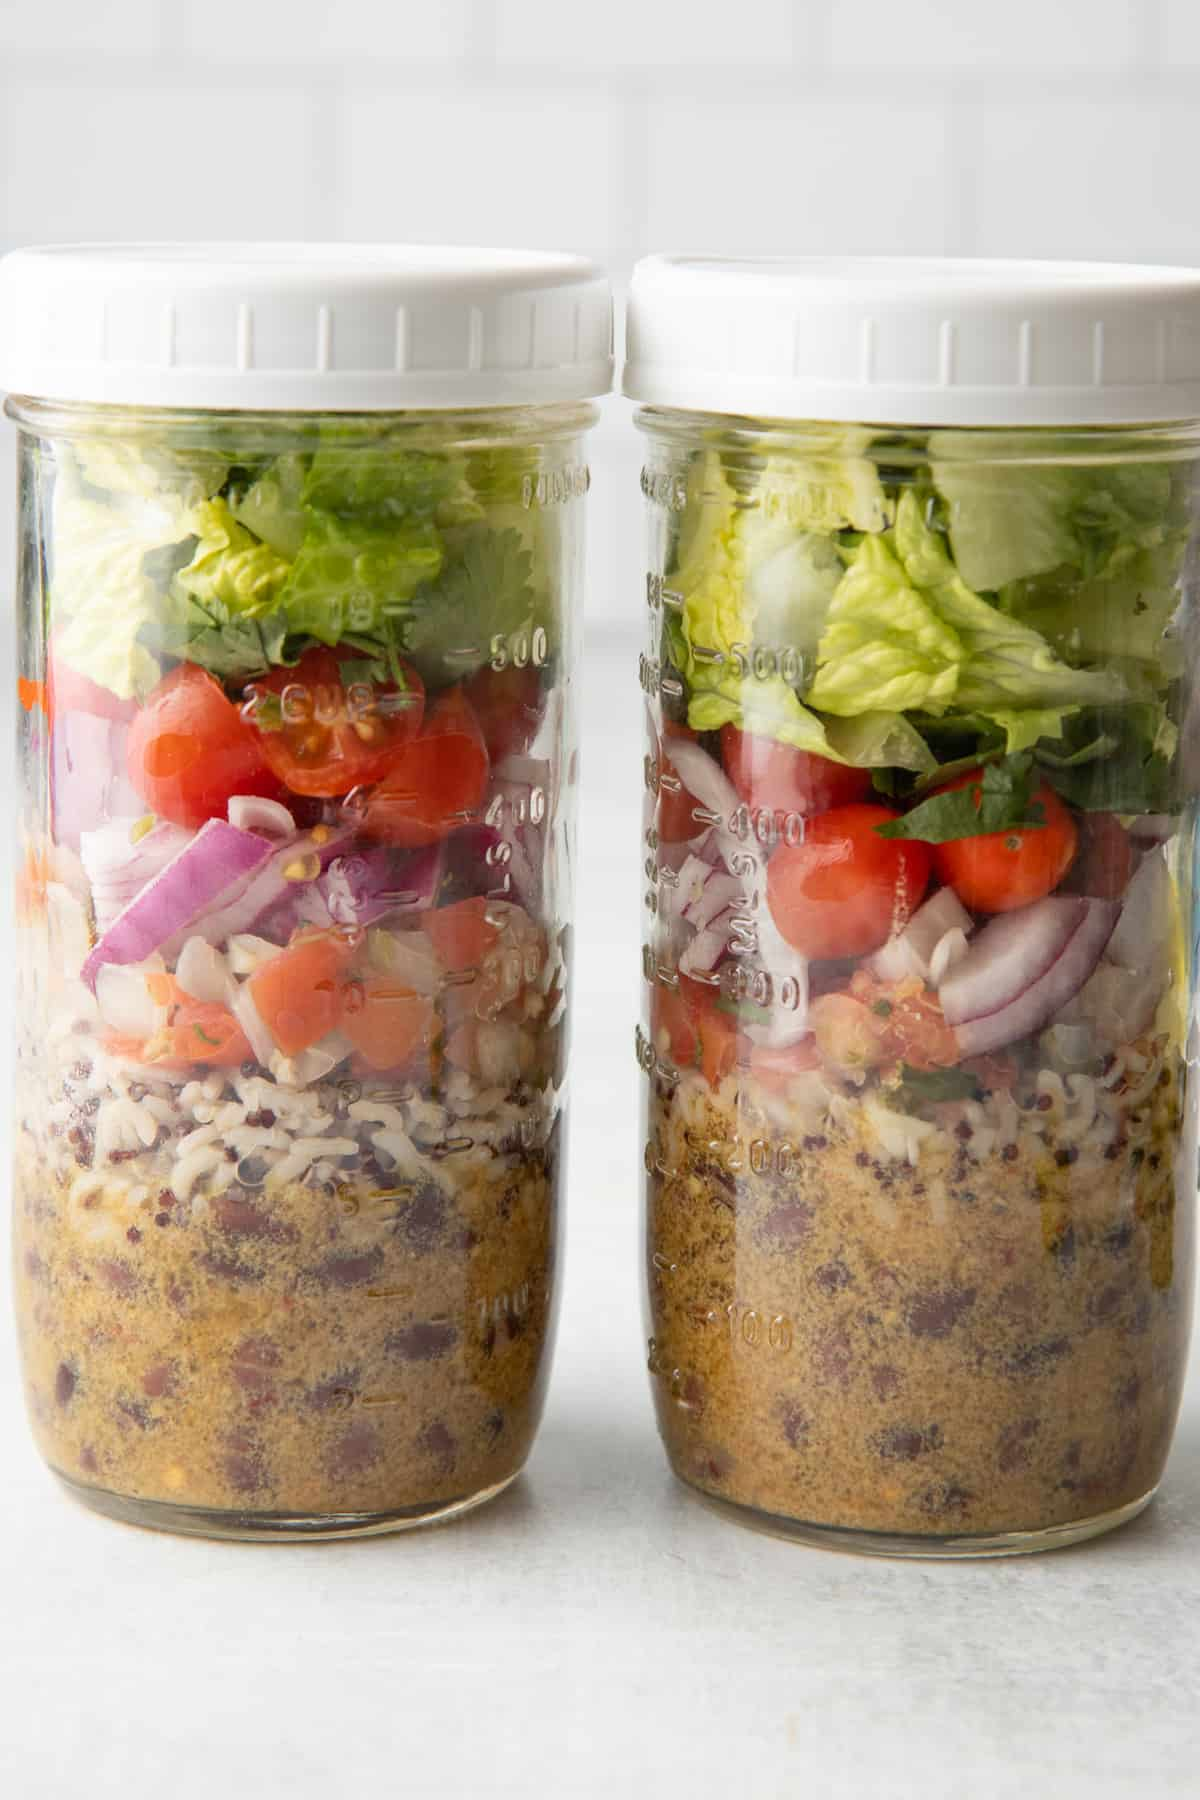 Two tall mason jars sit on a white countertop. The jars are layered with ingredients for black bean fiesta salad. Jars are topped with a white lid.